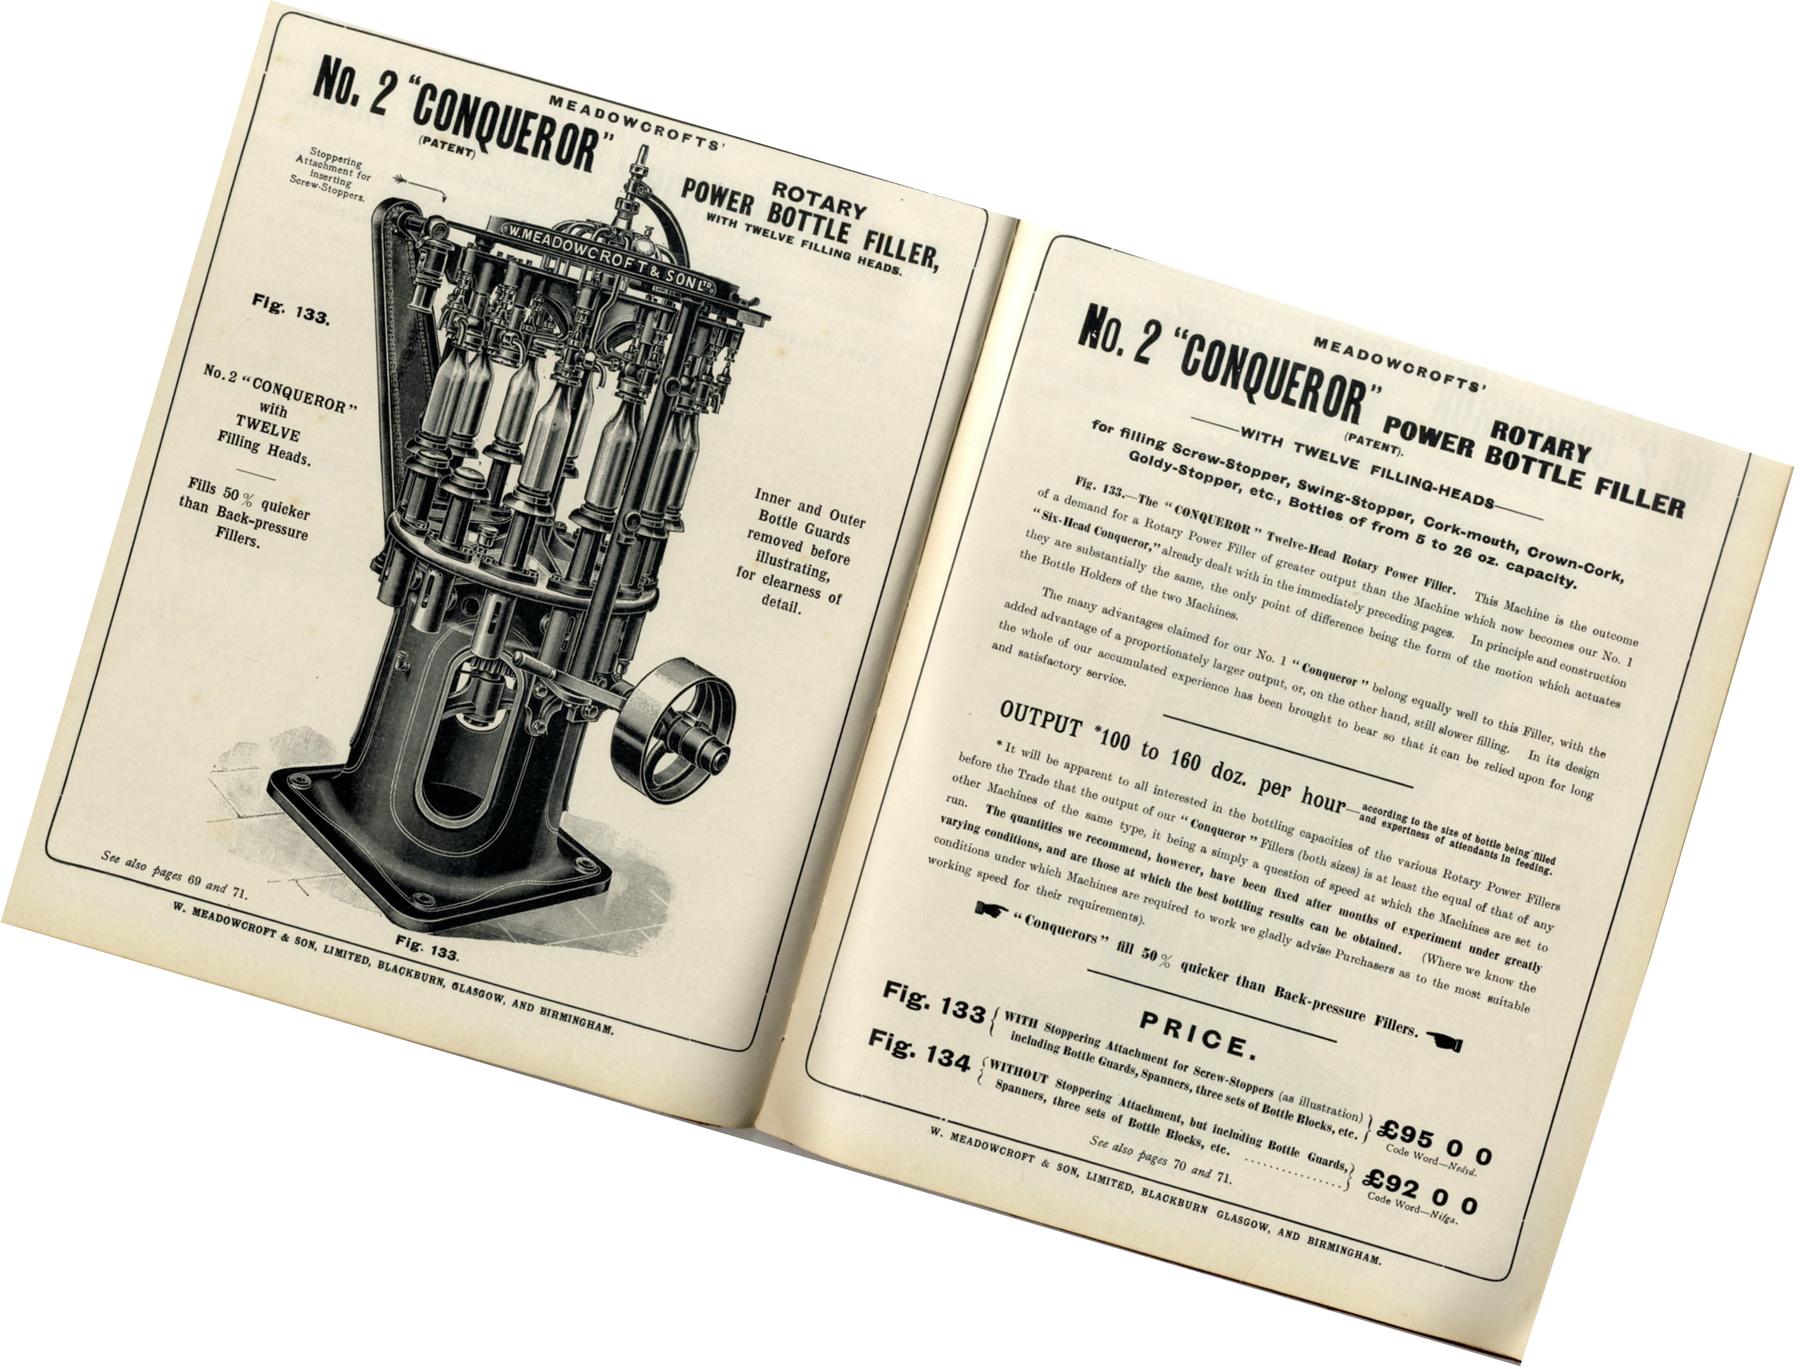 Meadowcroft Modern Aerated Water Machinery Trade Catalogue, No. 2 Conqueror